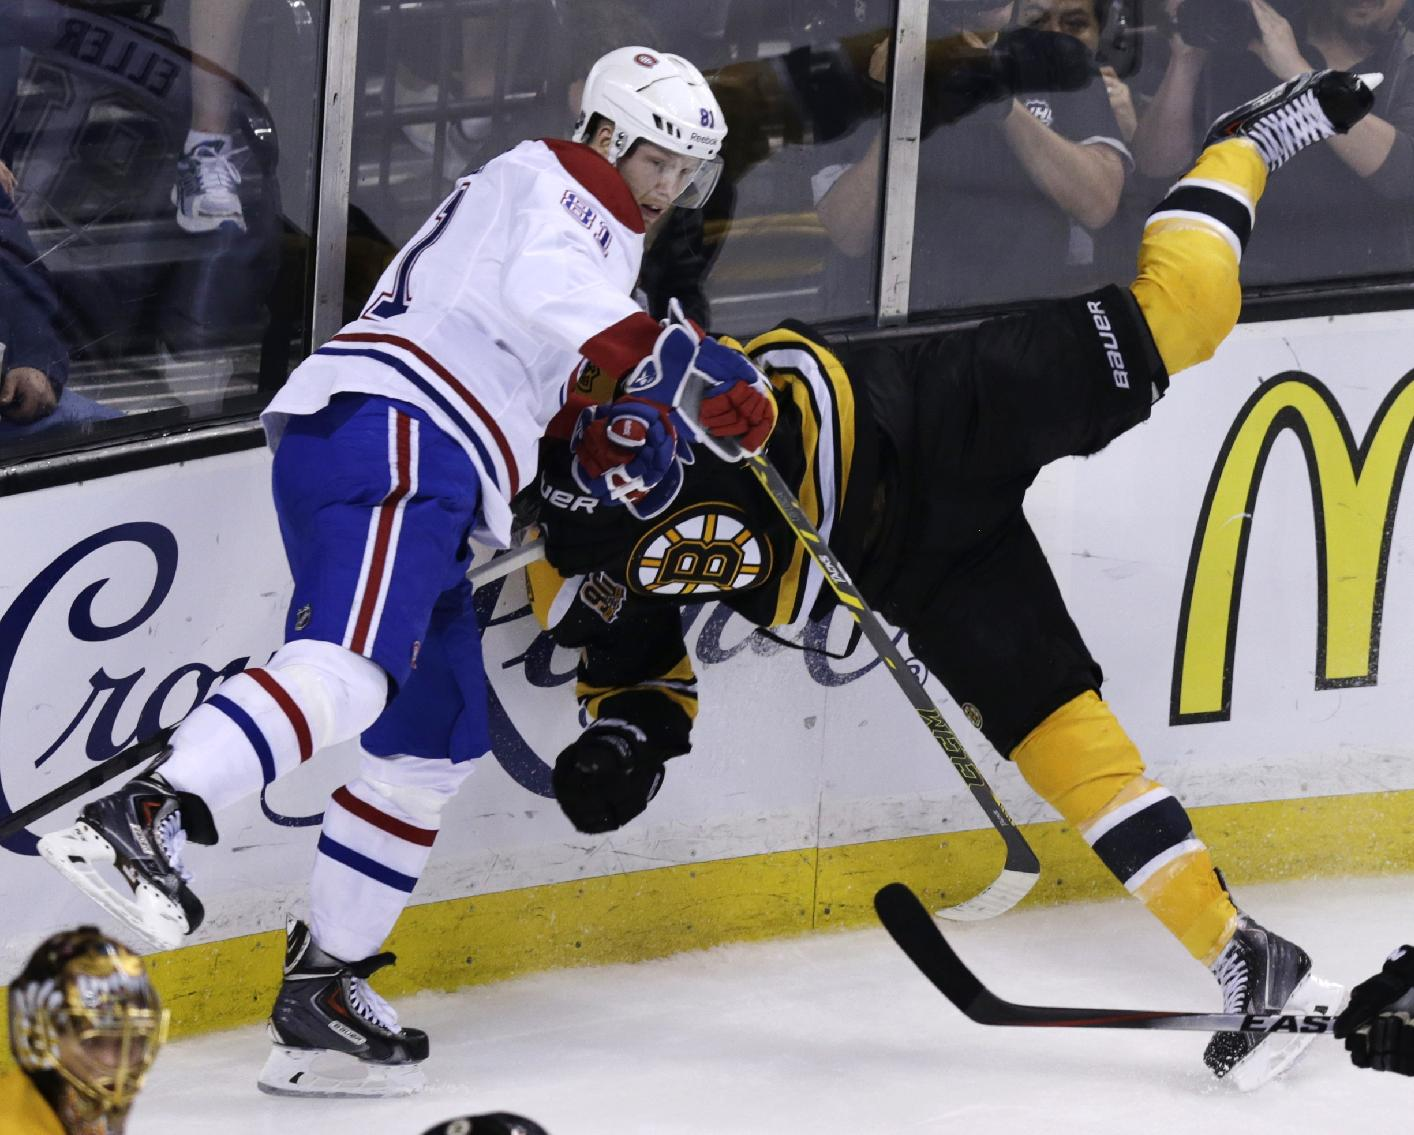 Bruins try to finish off Canadiens in Game 6